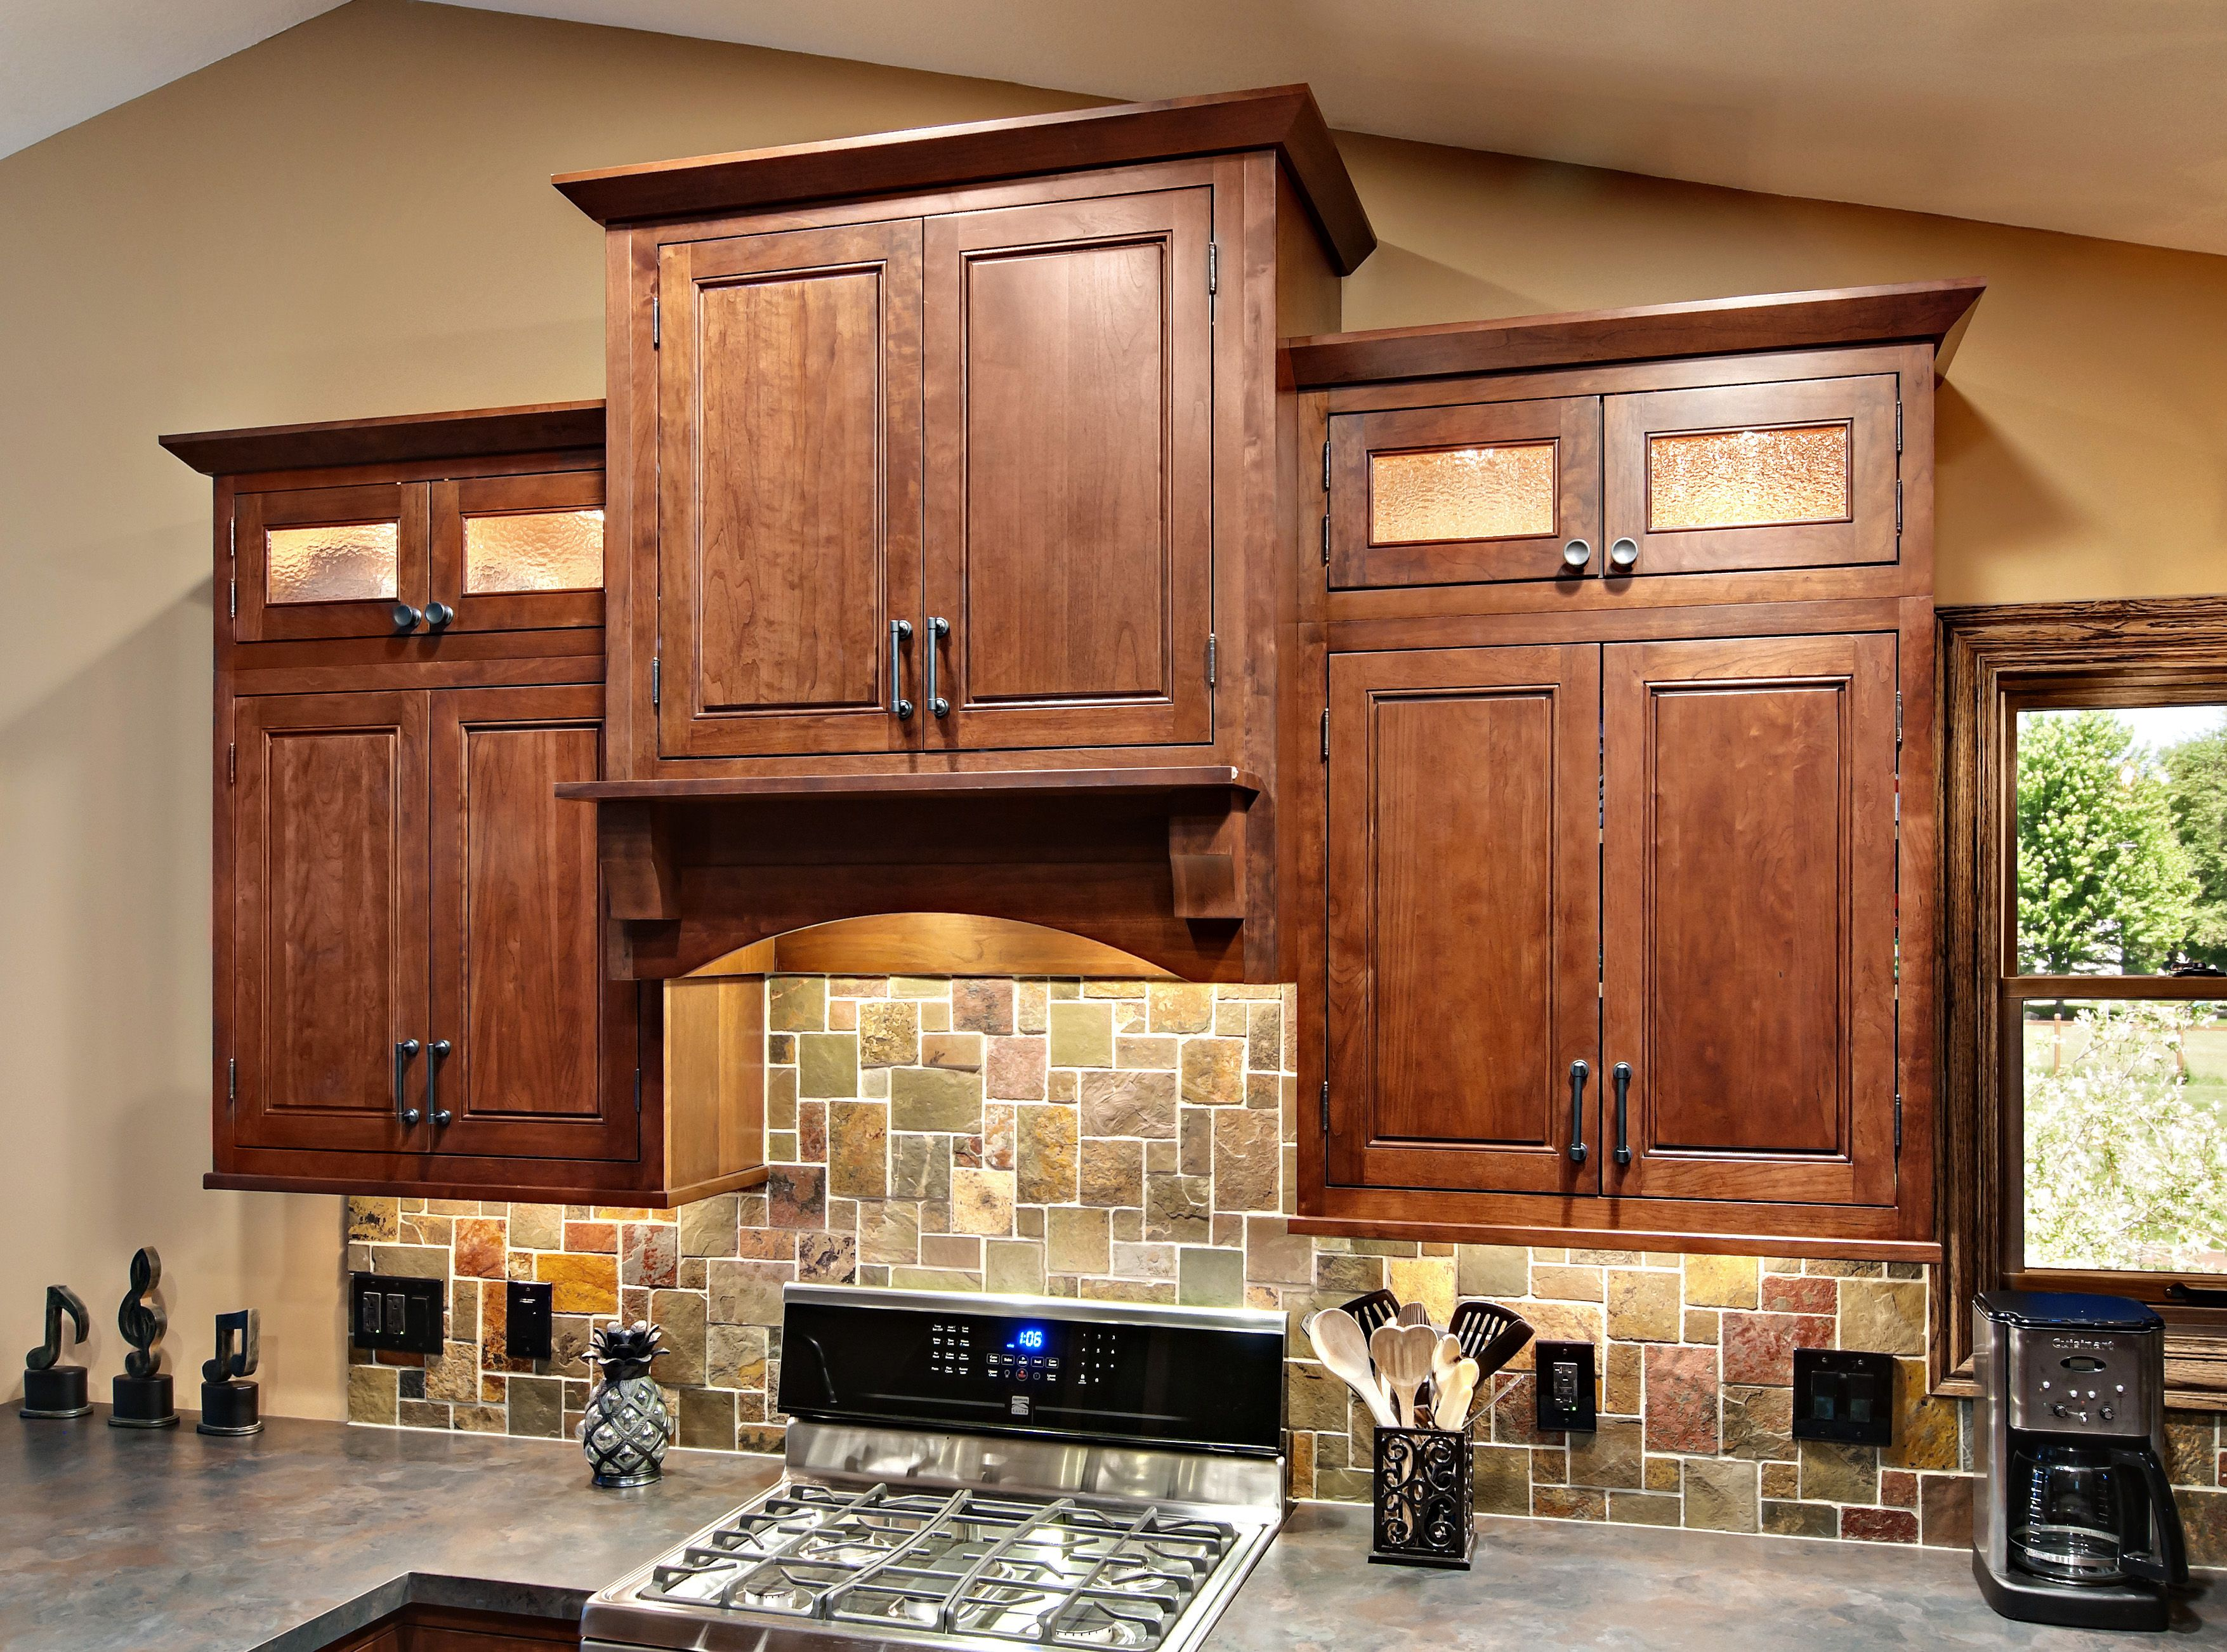 The Kitchen Cabinets Are The Fairmont Inset Style From Cliqstudios Com In Th Cherry Cabinets Kitchen Solid Wood Kitchen Cabinets Custom Kitchen Cabinets Design